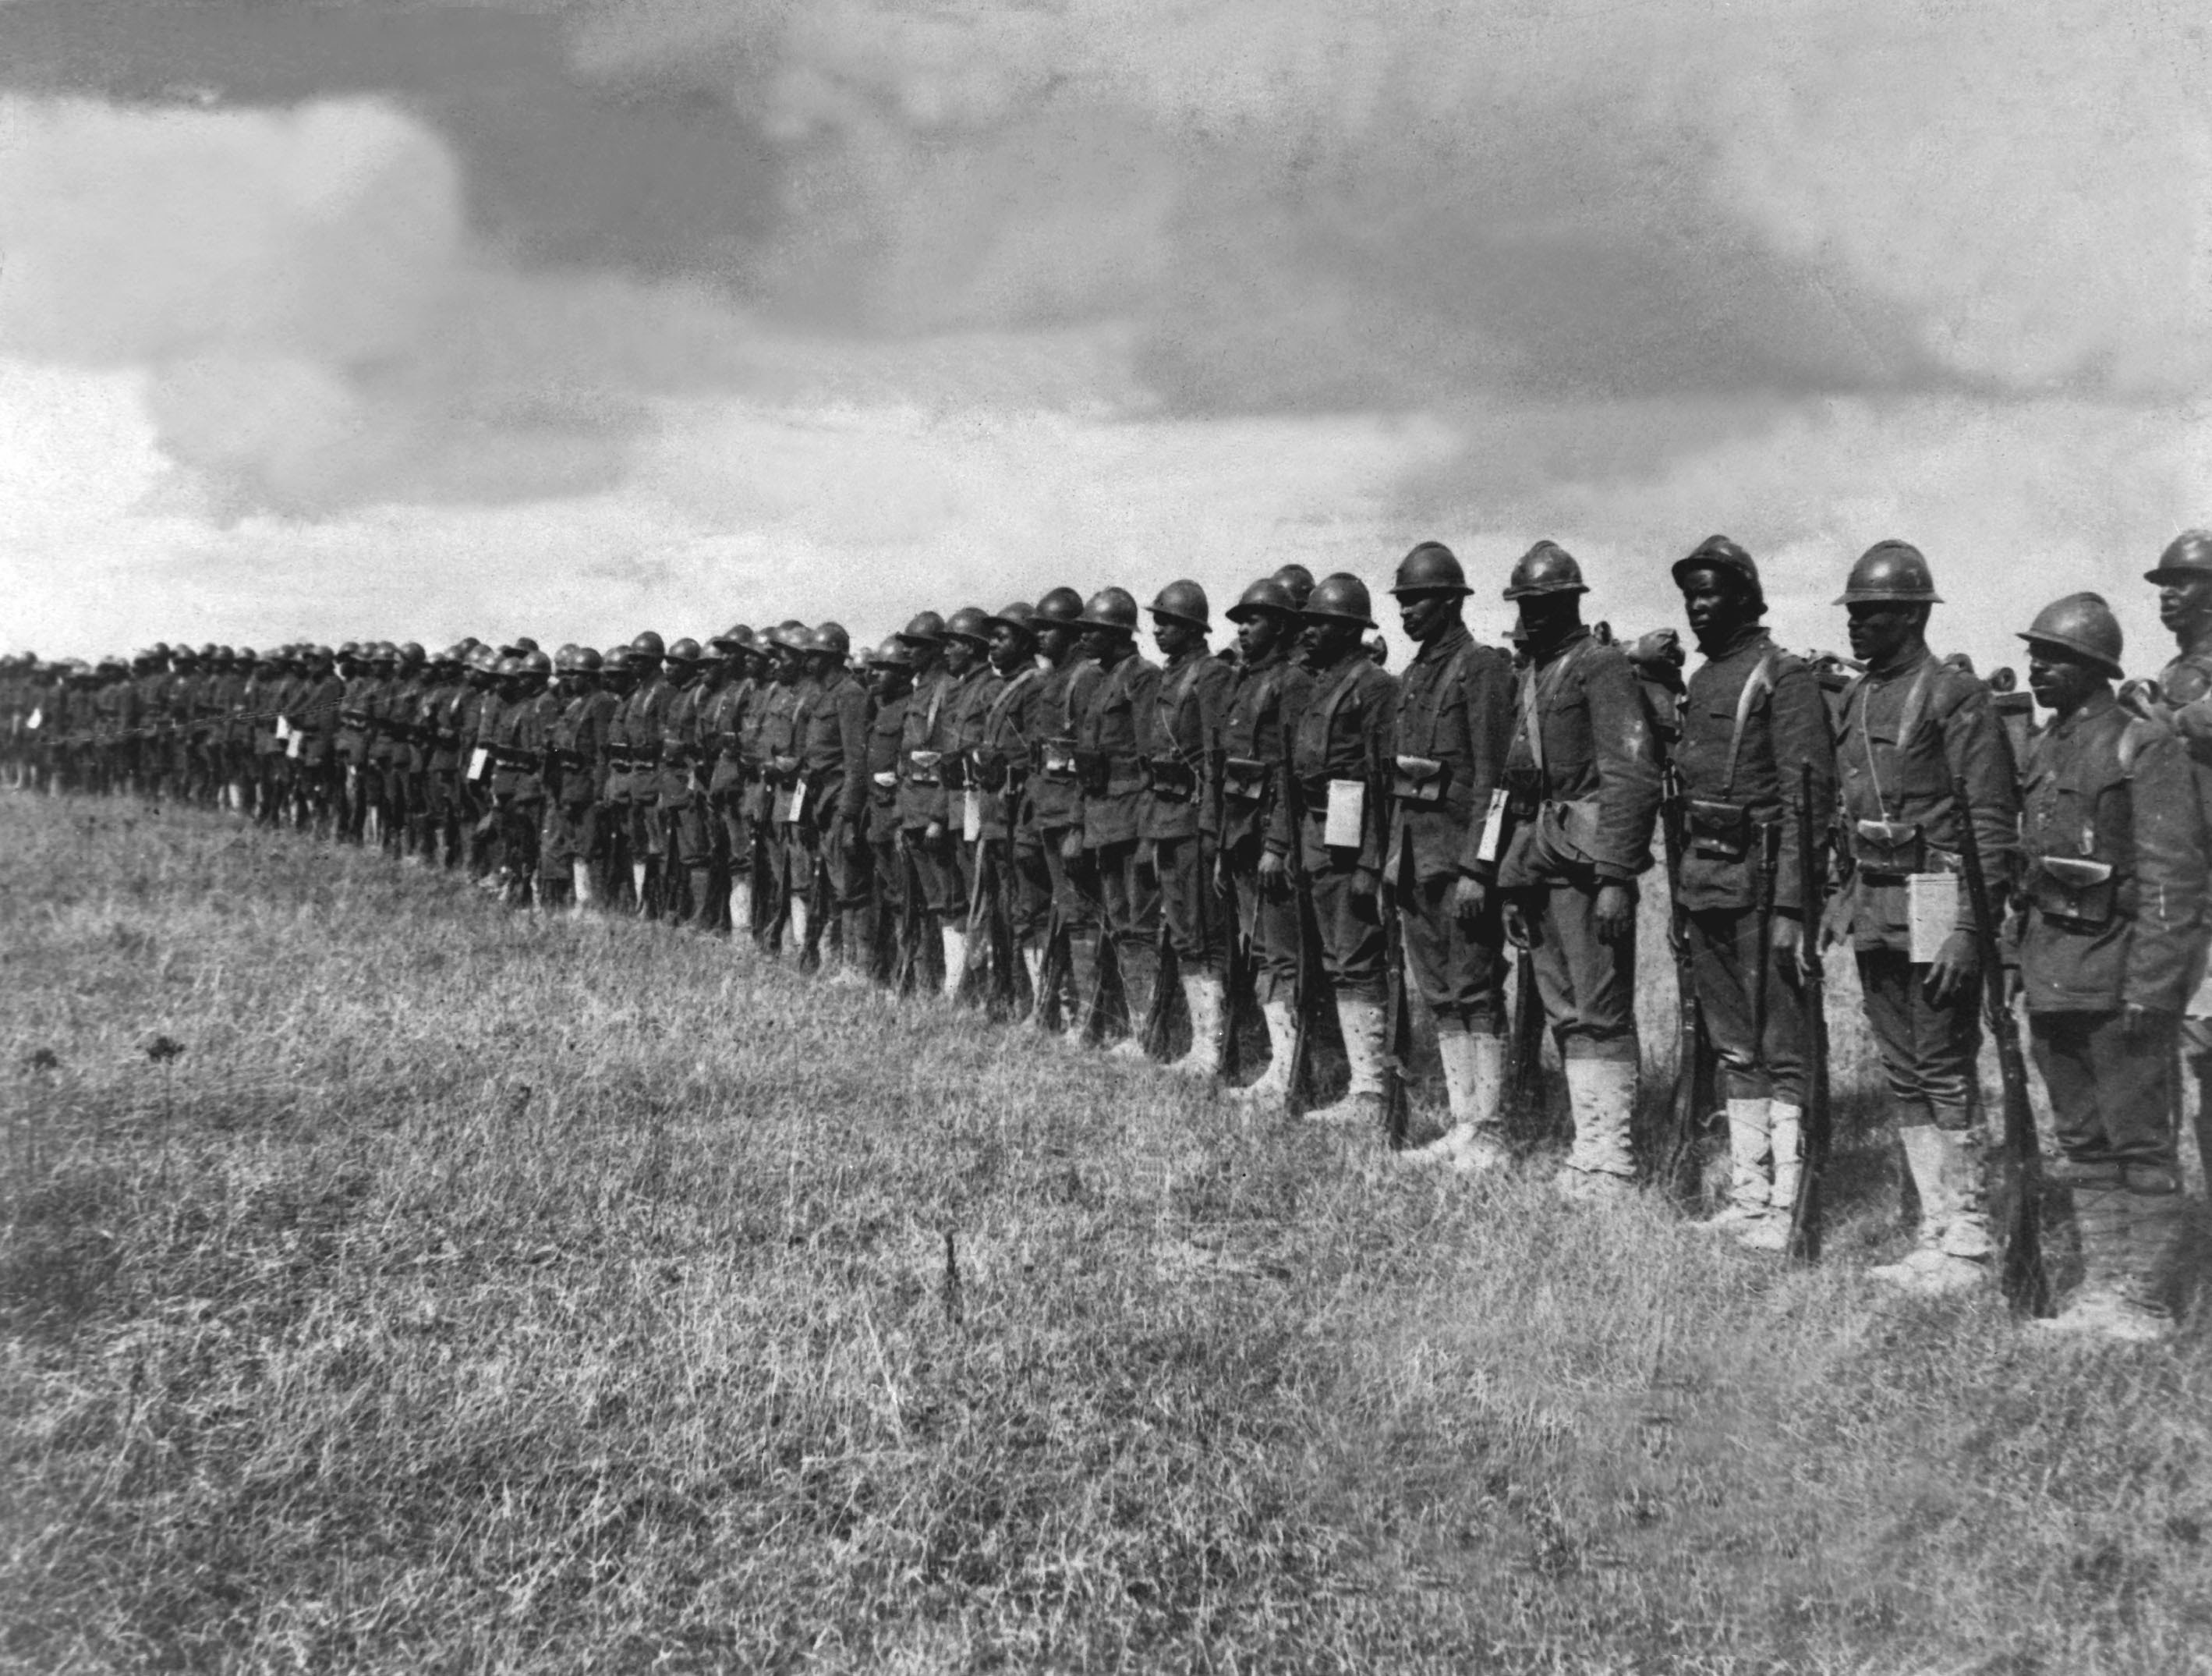 African-American heroes are a part of a vanishing World War I legacy